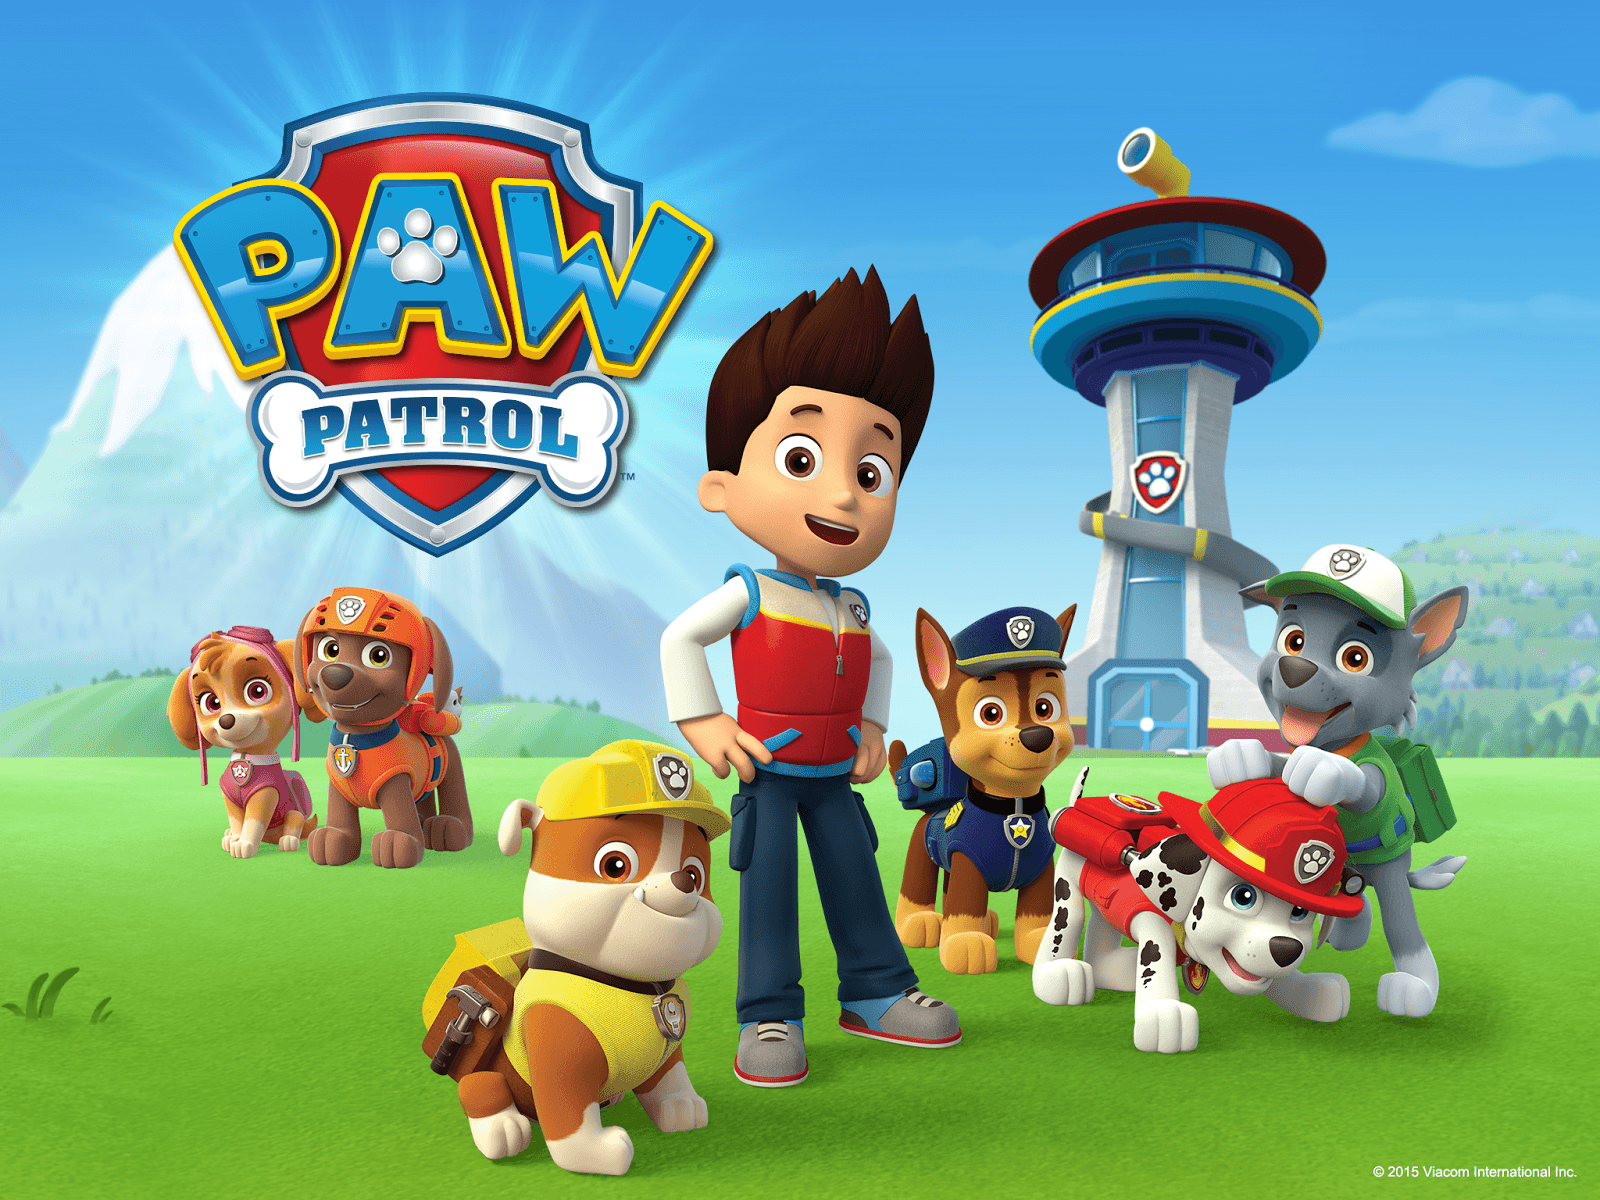 Paw Patrol Wallpapers Top Free Paw Patrol Backgrounds Wallpaperaccess